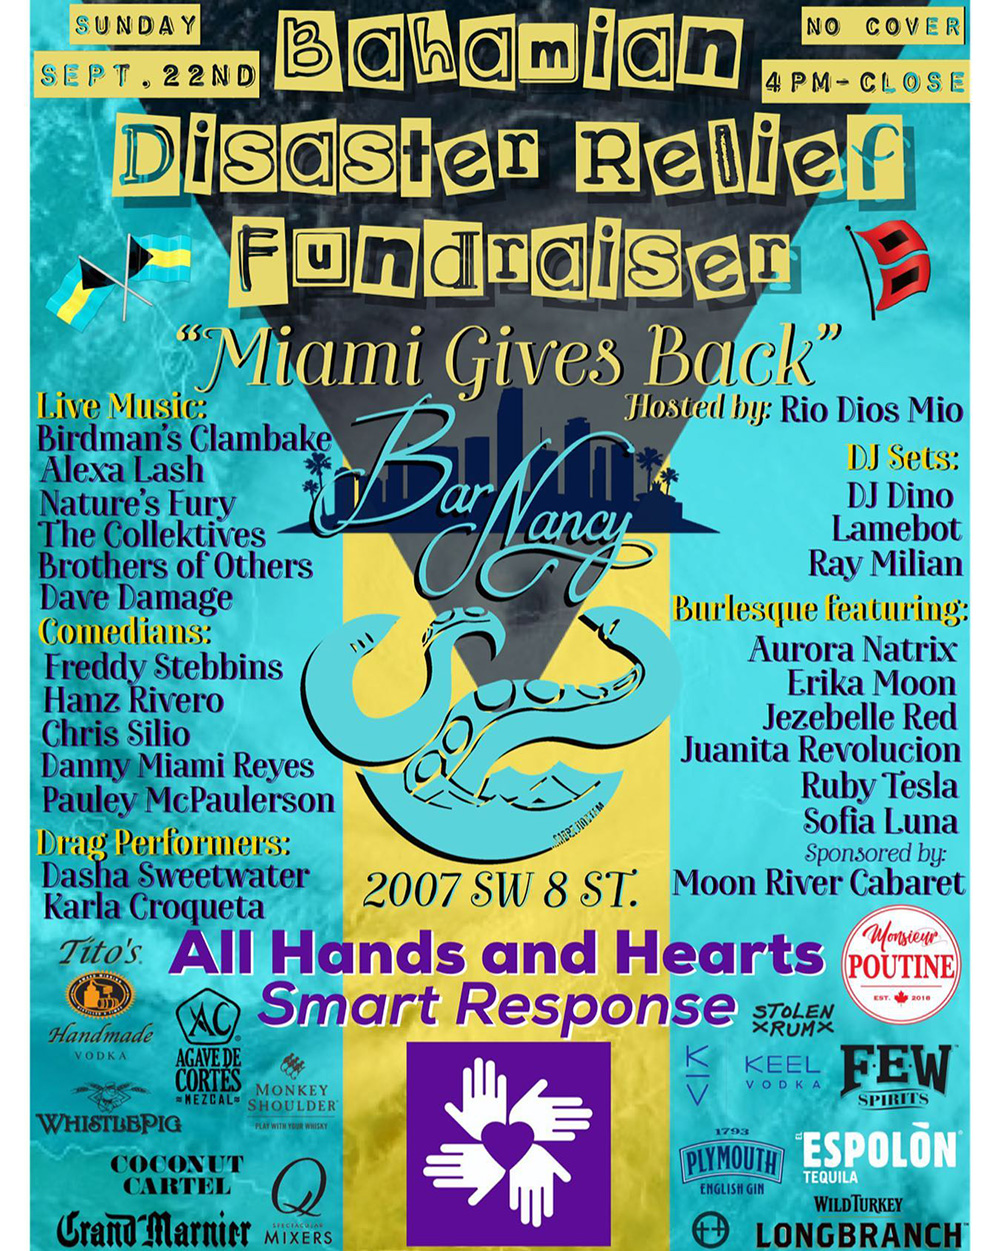 Miami Gives Back! Bahamian Disaster Relief Fundraiser at Bar Nancy